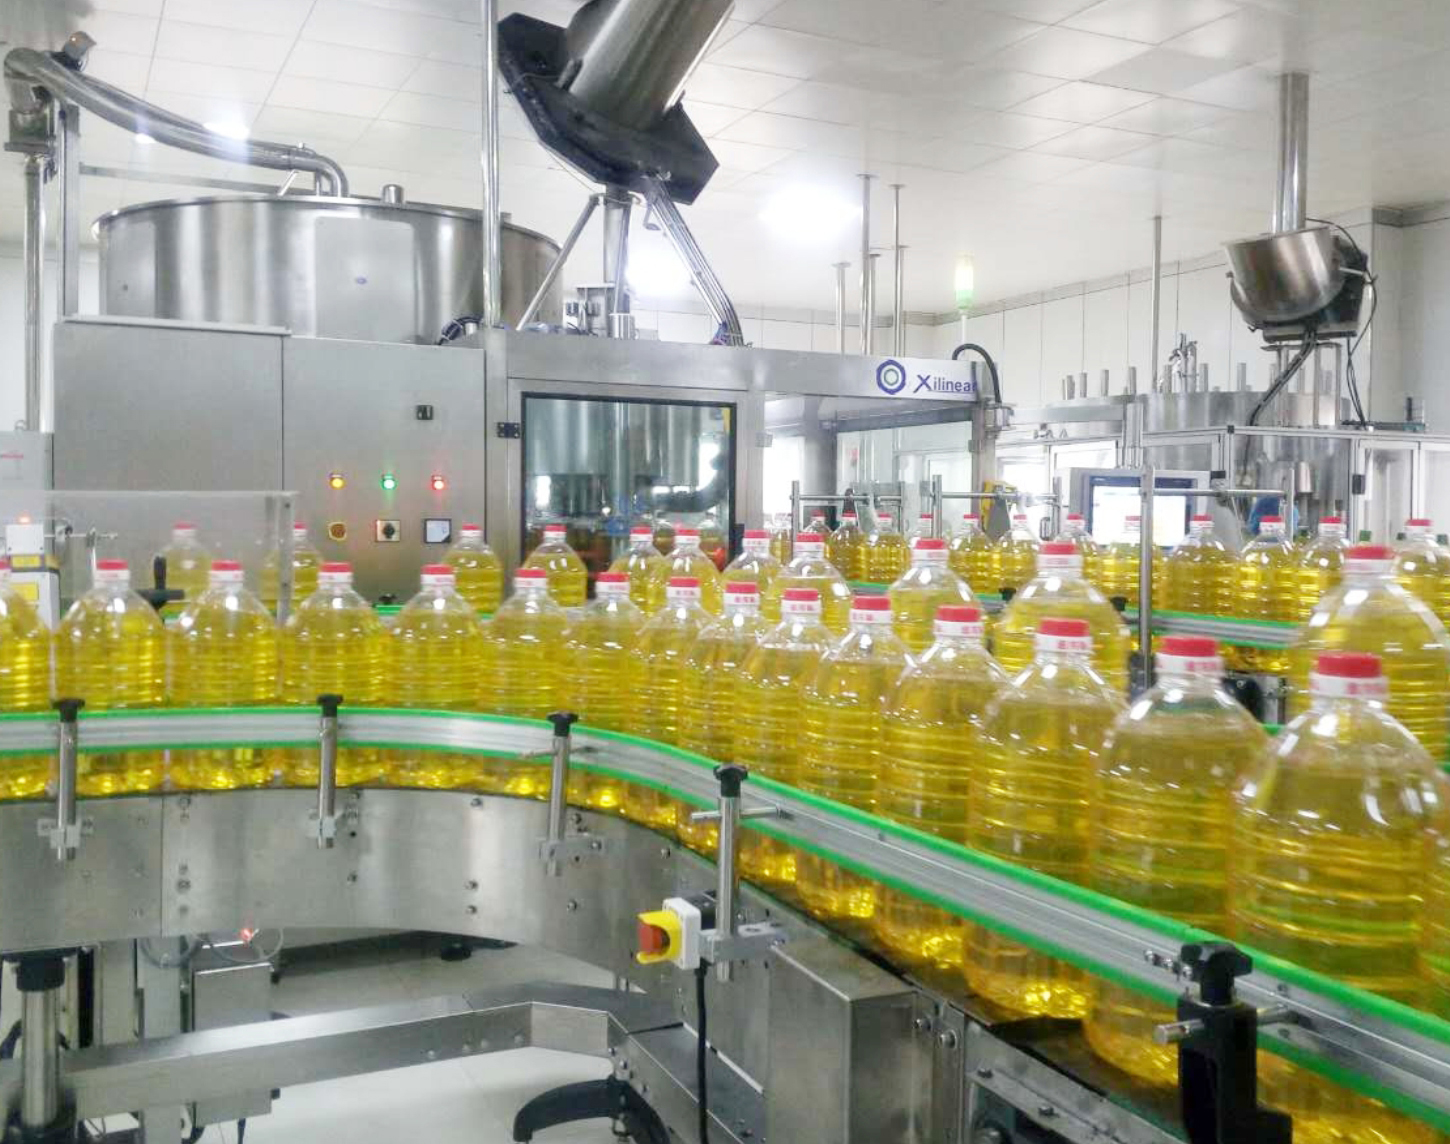 Guangzhou Xili dozens of production lines put into use in goldfish